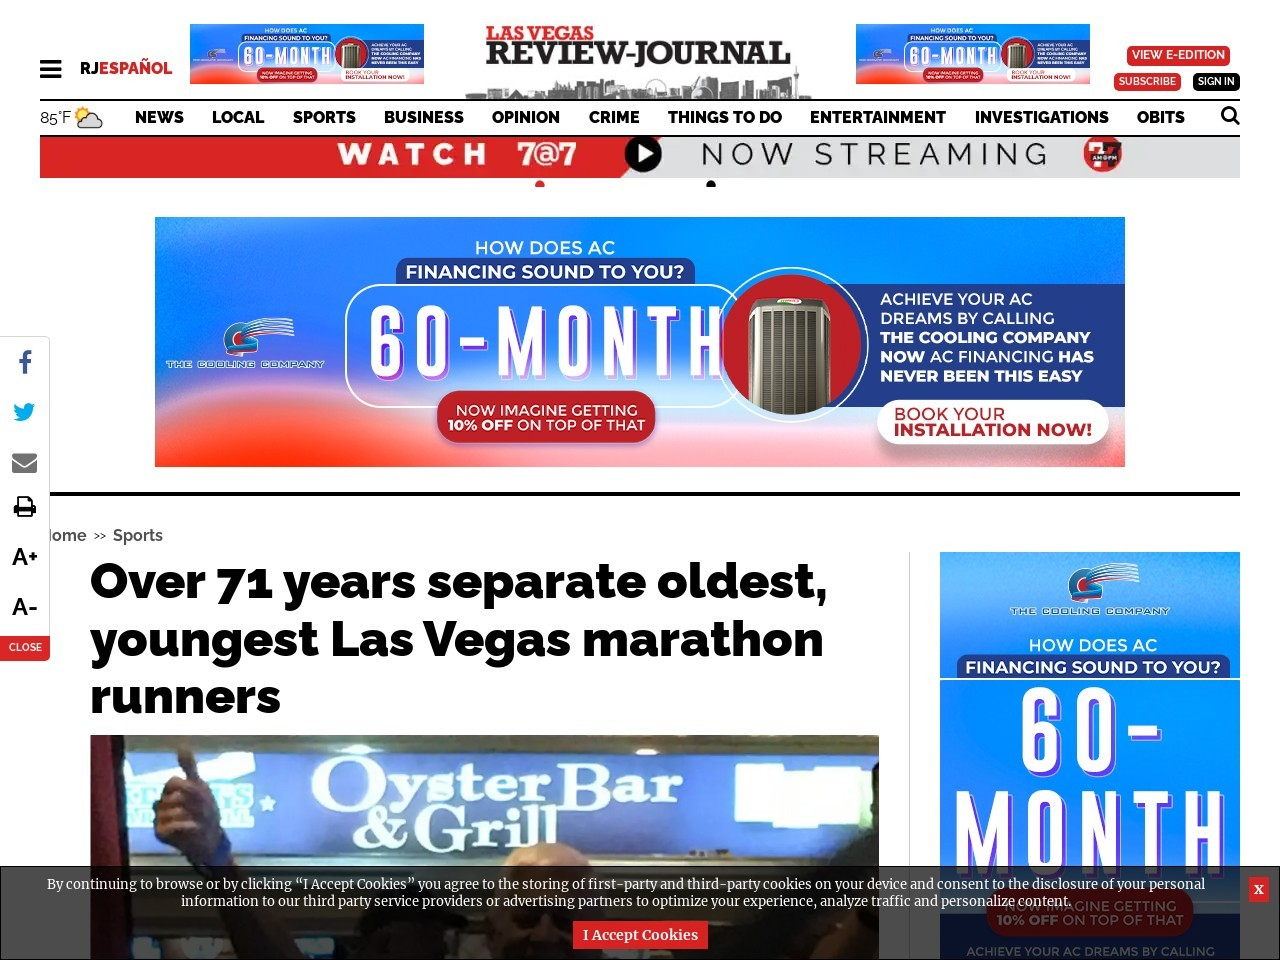 More than 71 years separate oldest, youngest marathon participants